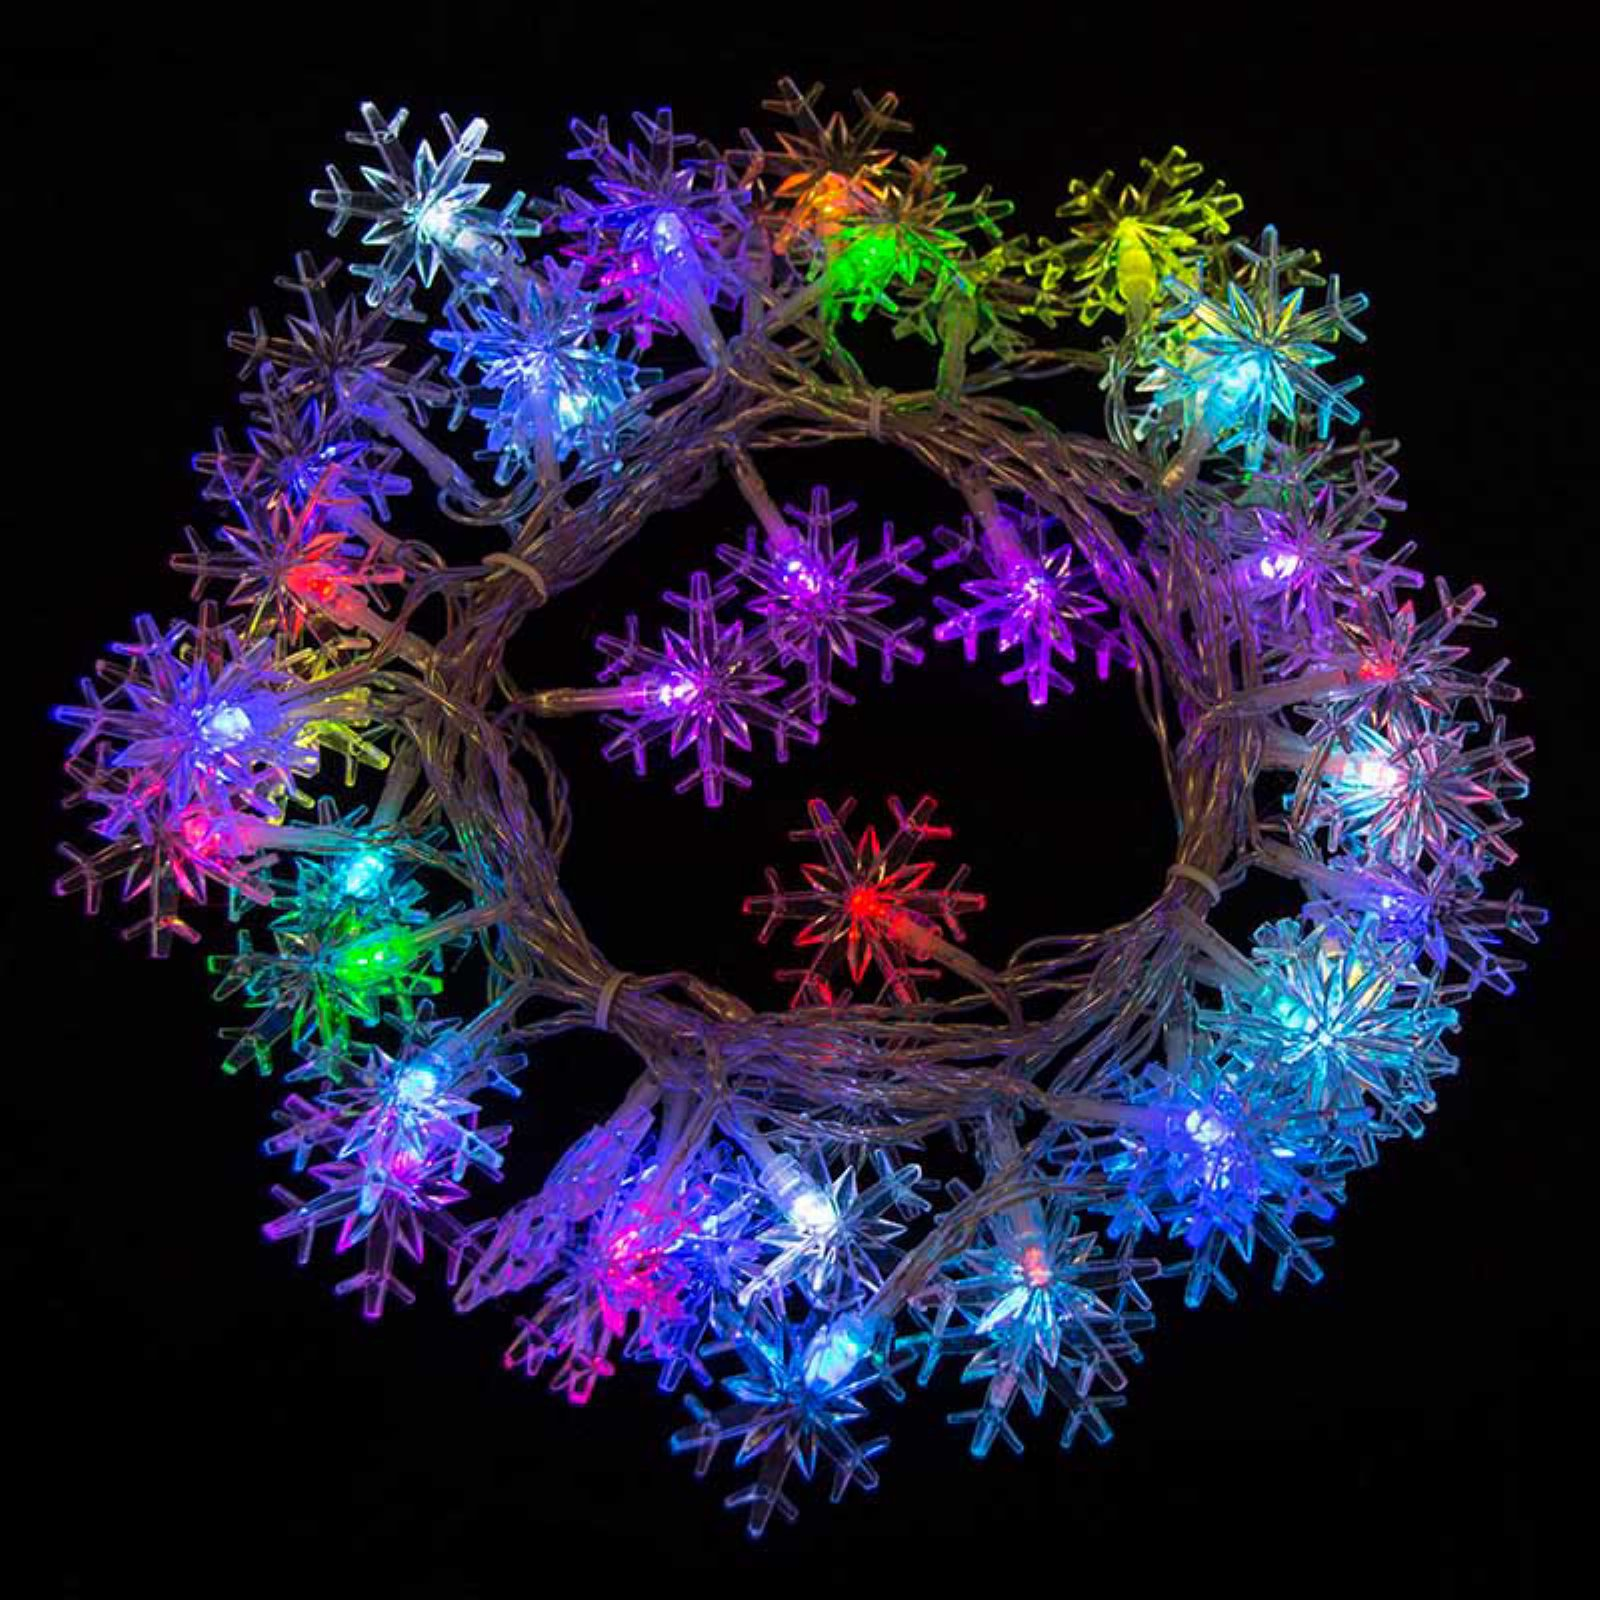 2EL50LEDSNOWRGB Electric Powered 50 LED Multicolor Snowflake Flash Light Christmas Holiday Light, 19.5', Lot of 2 by ALEKO